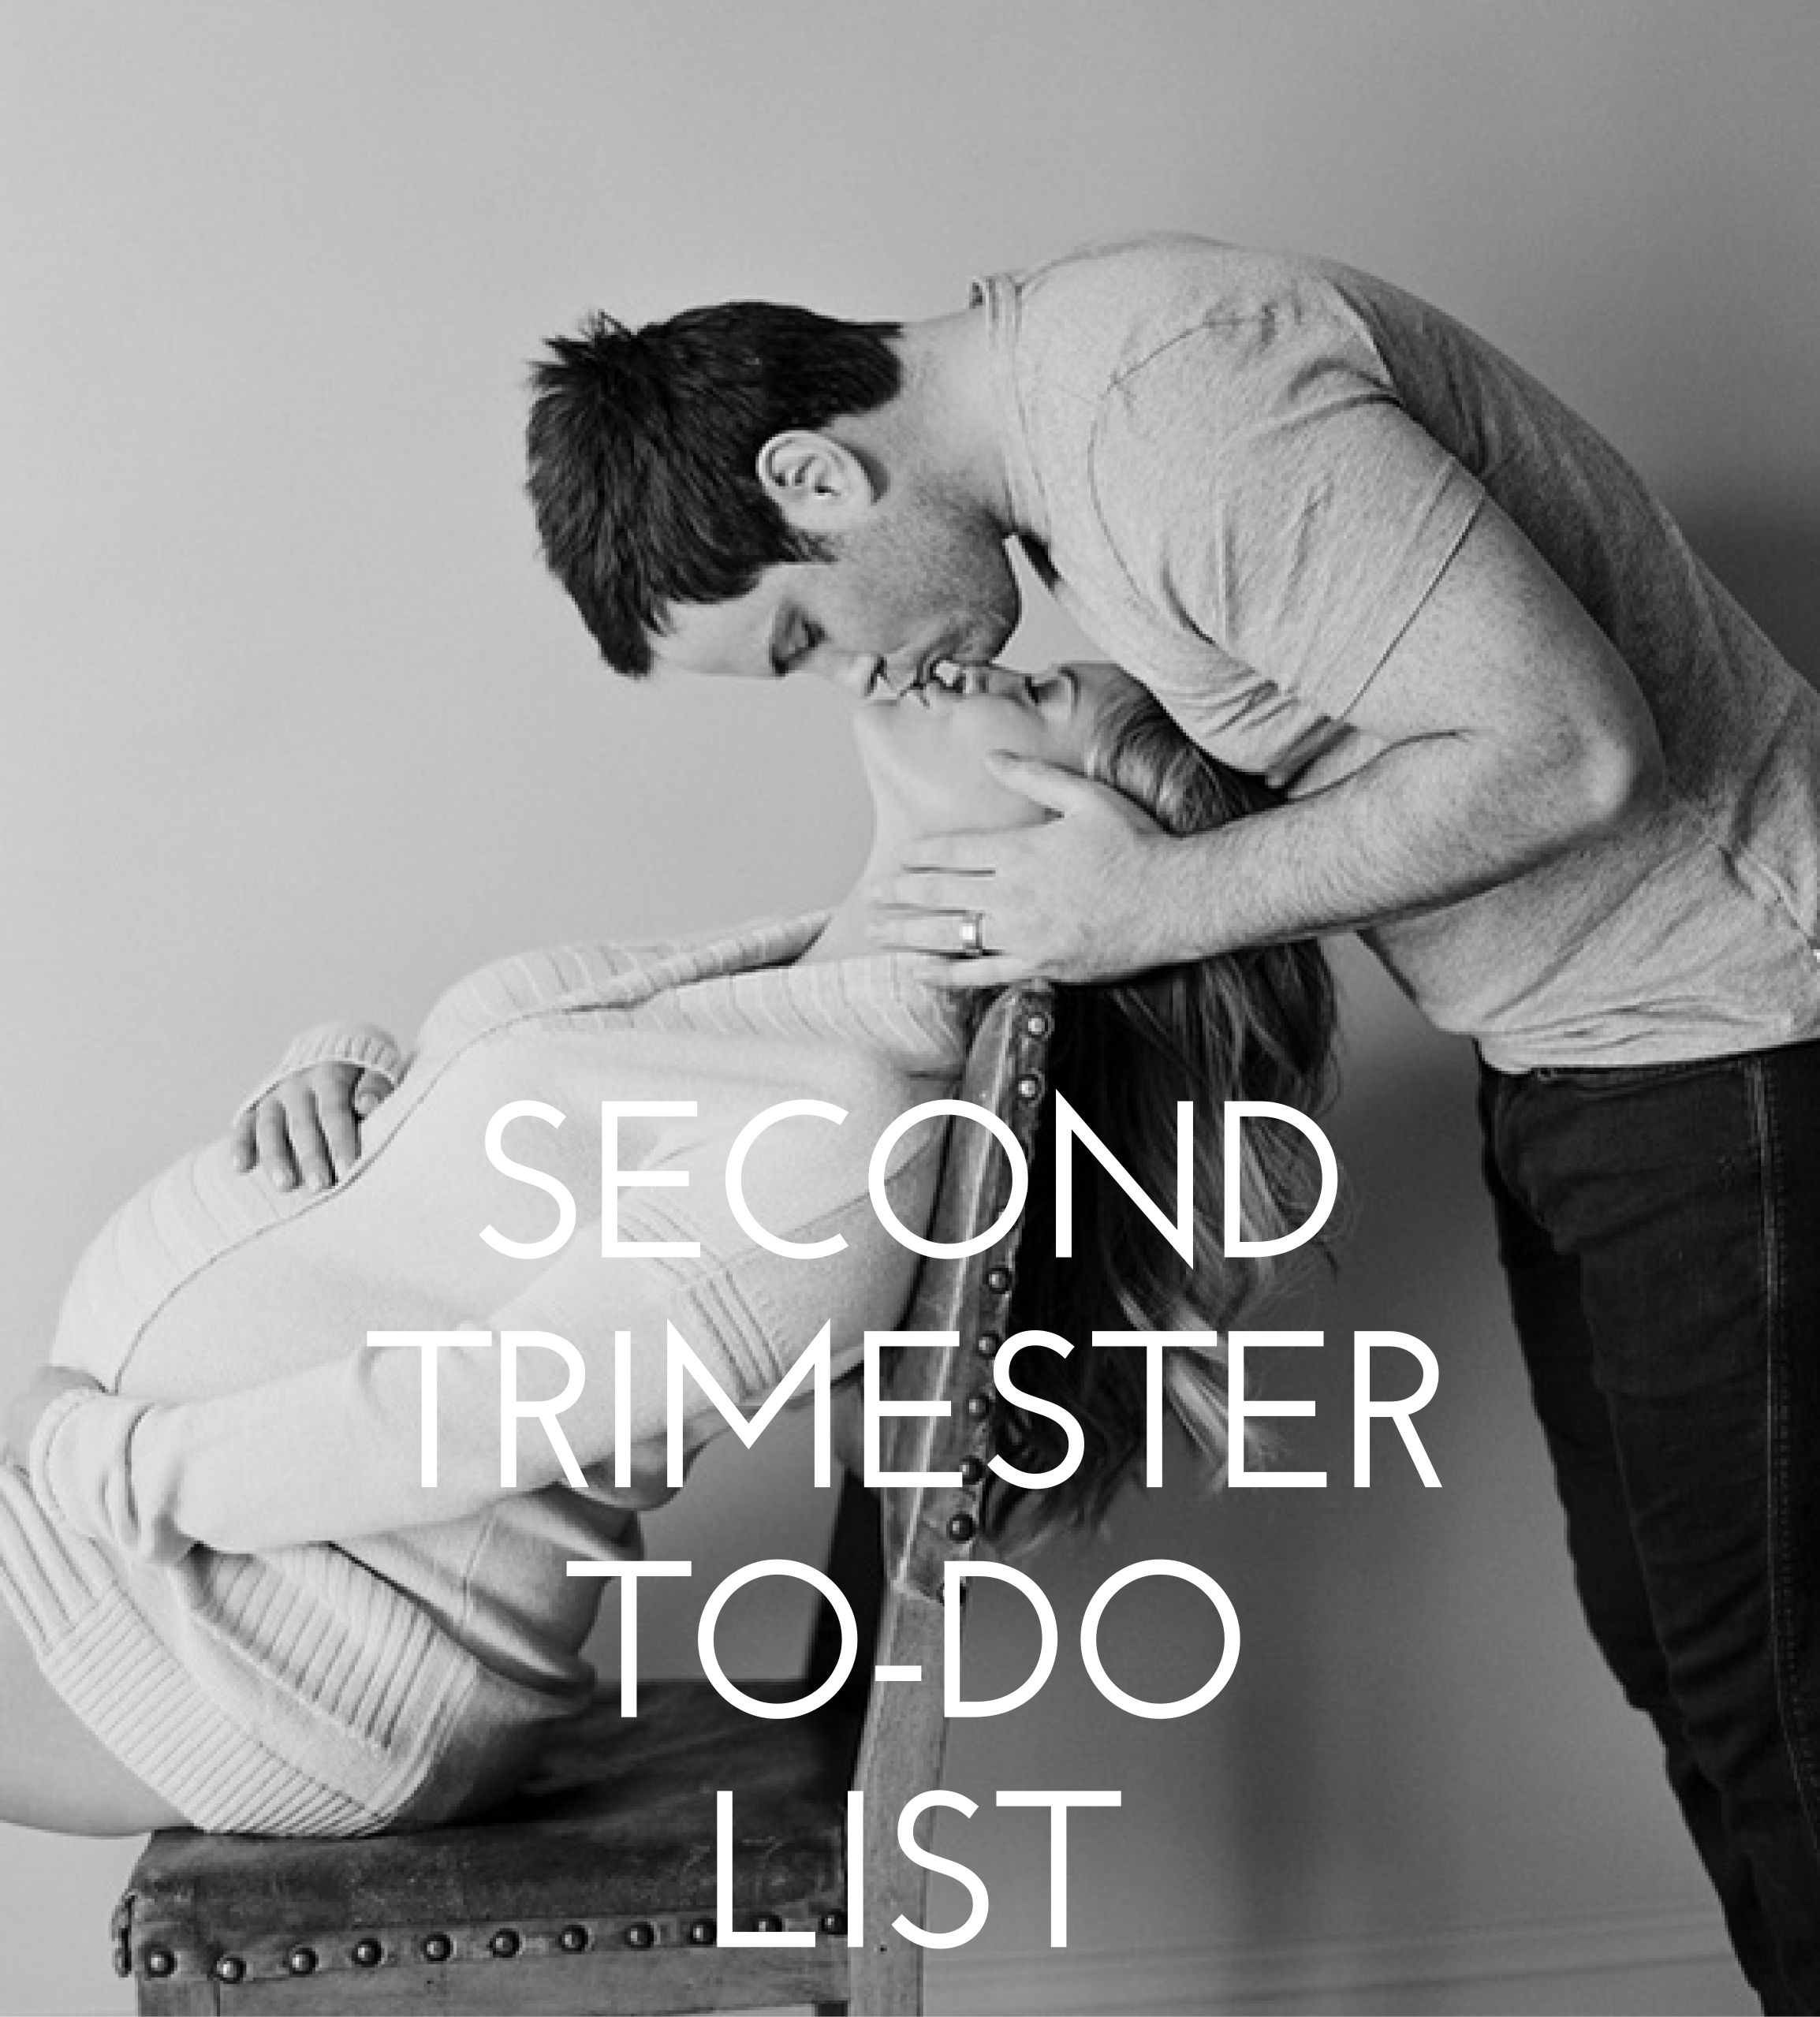 The Second Trimester Can Be A Wonderful Time For Many